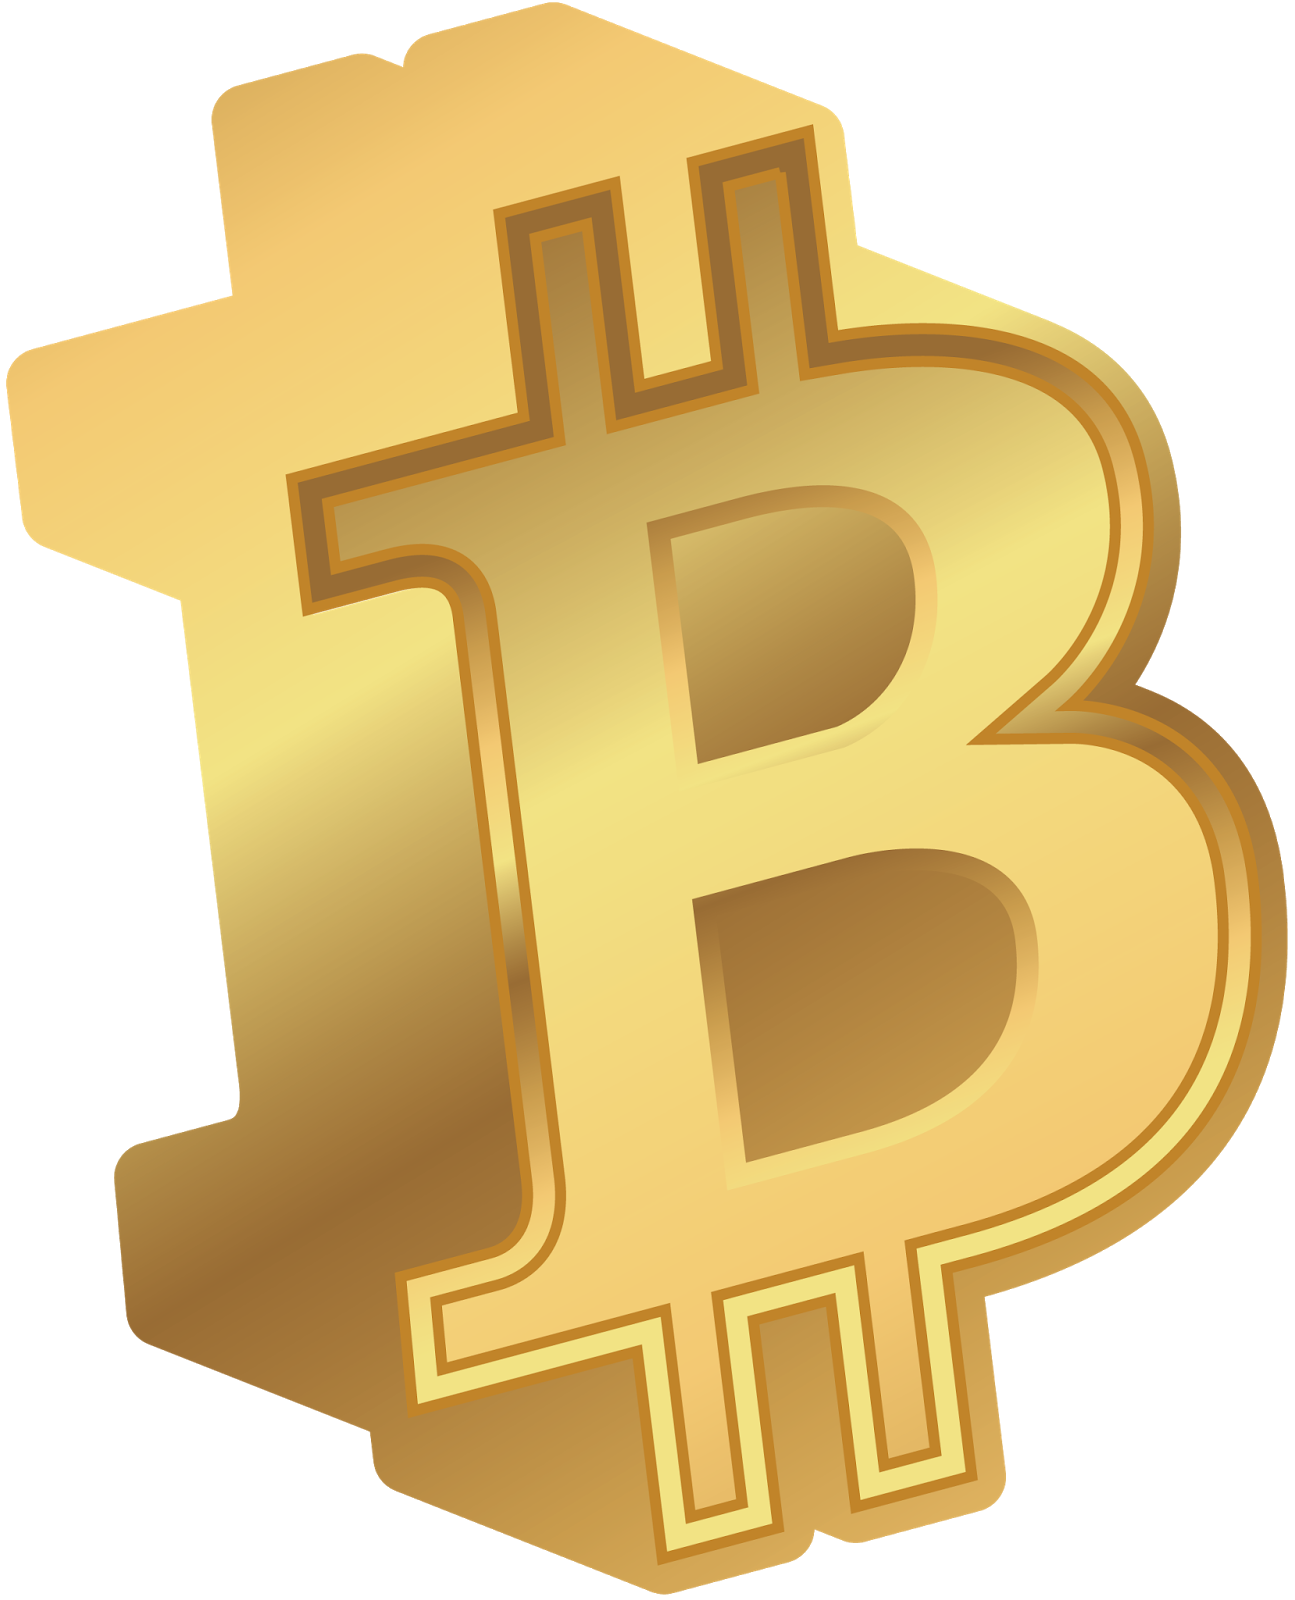 Bitcoin now accepted by political campaigns and PACs